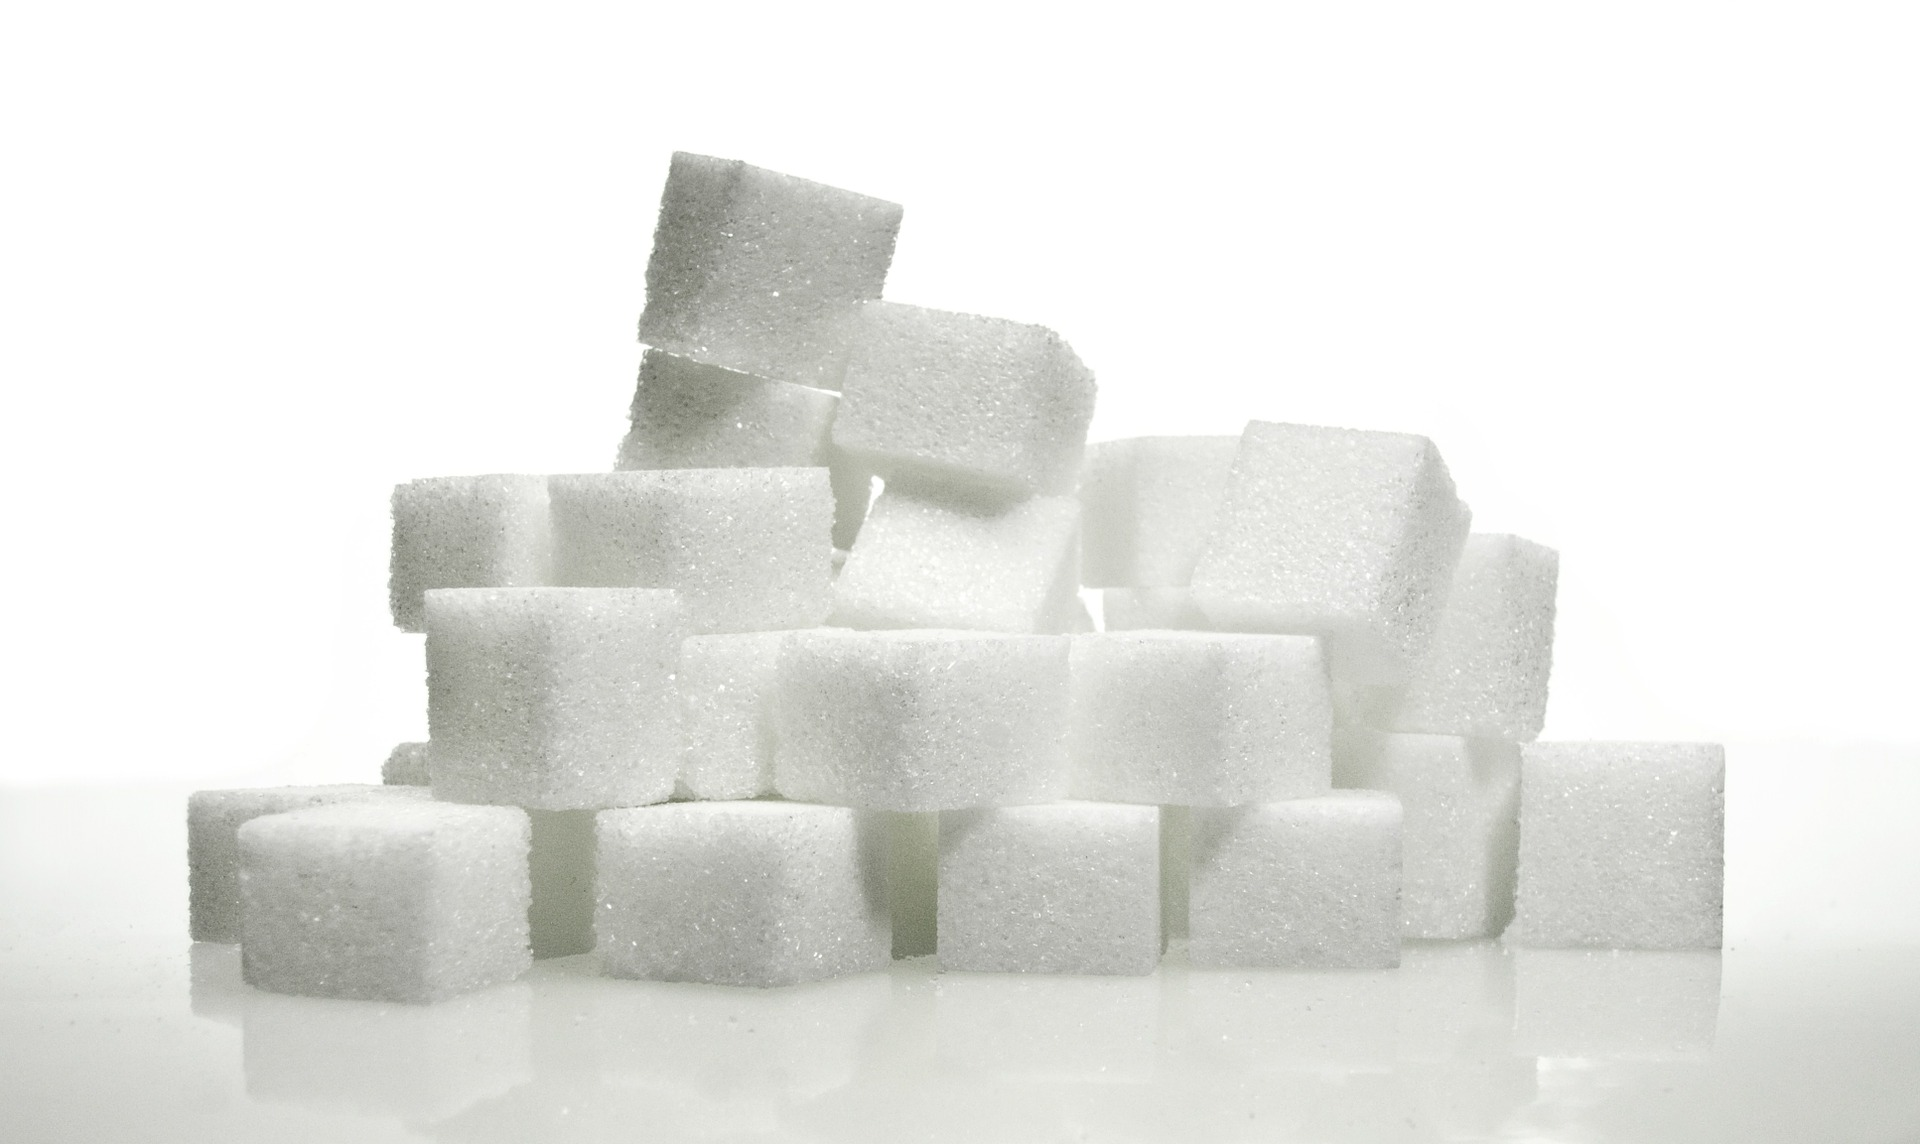 Does excessive sugar affect the immune system?